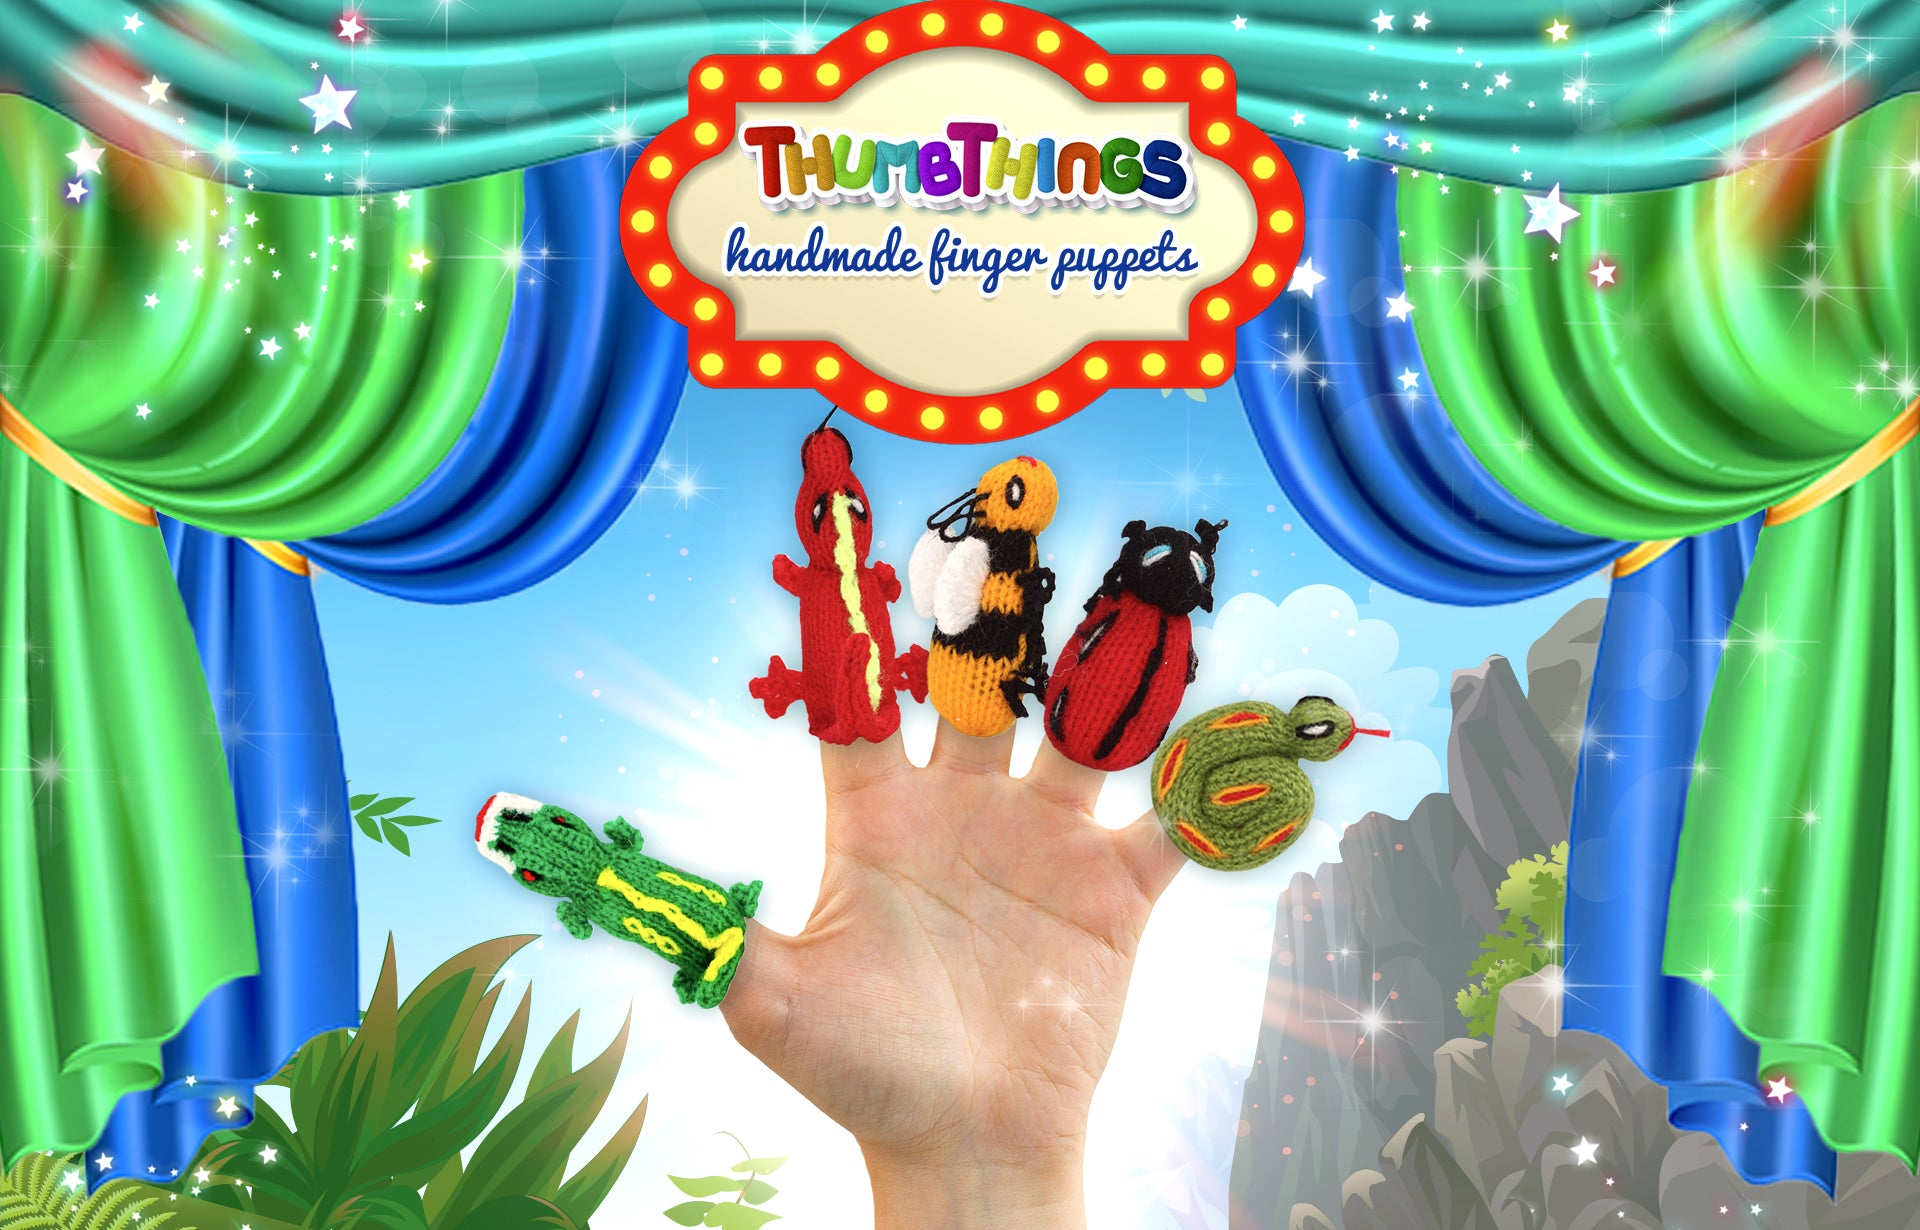 Reptile and insect finger puppets by Thumbthings Finger Puppets